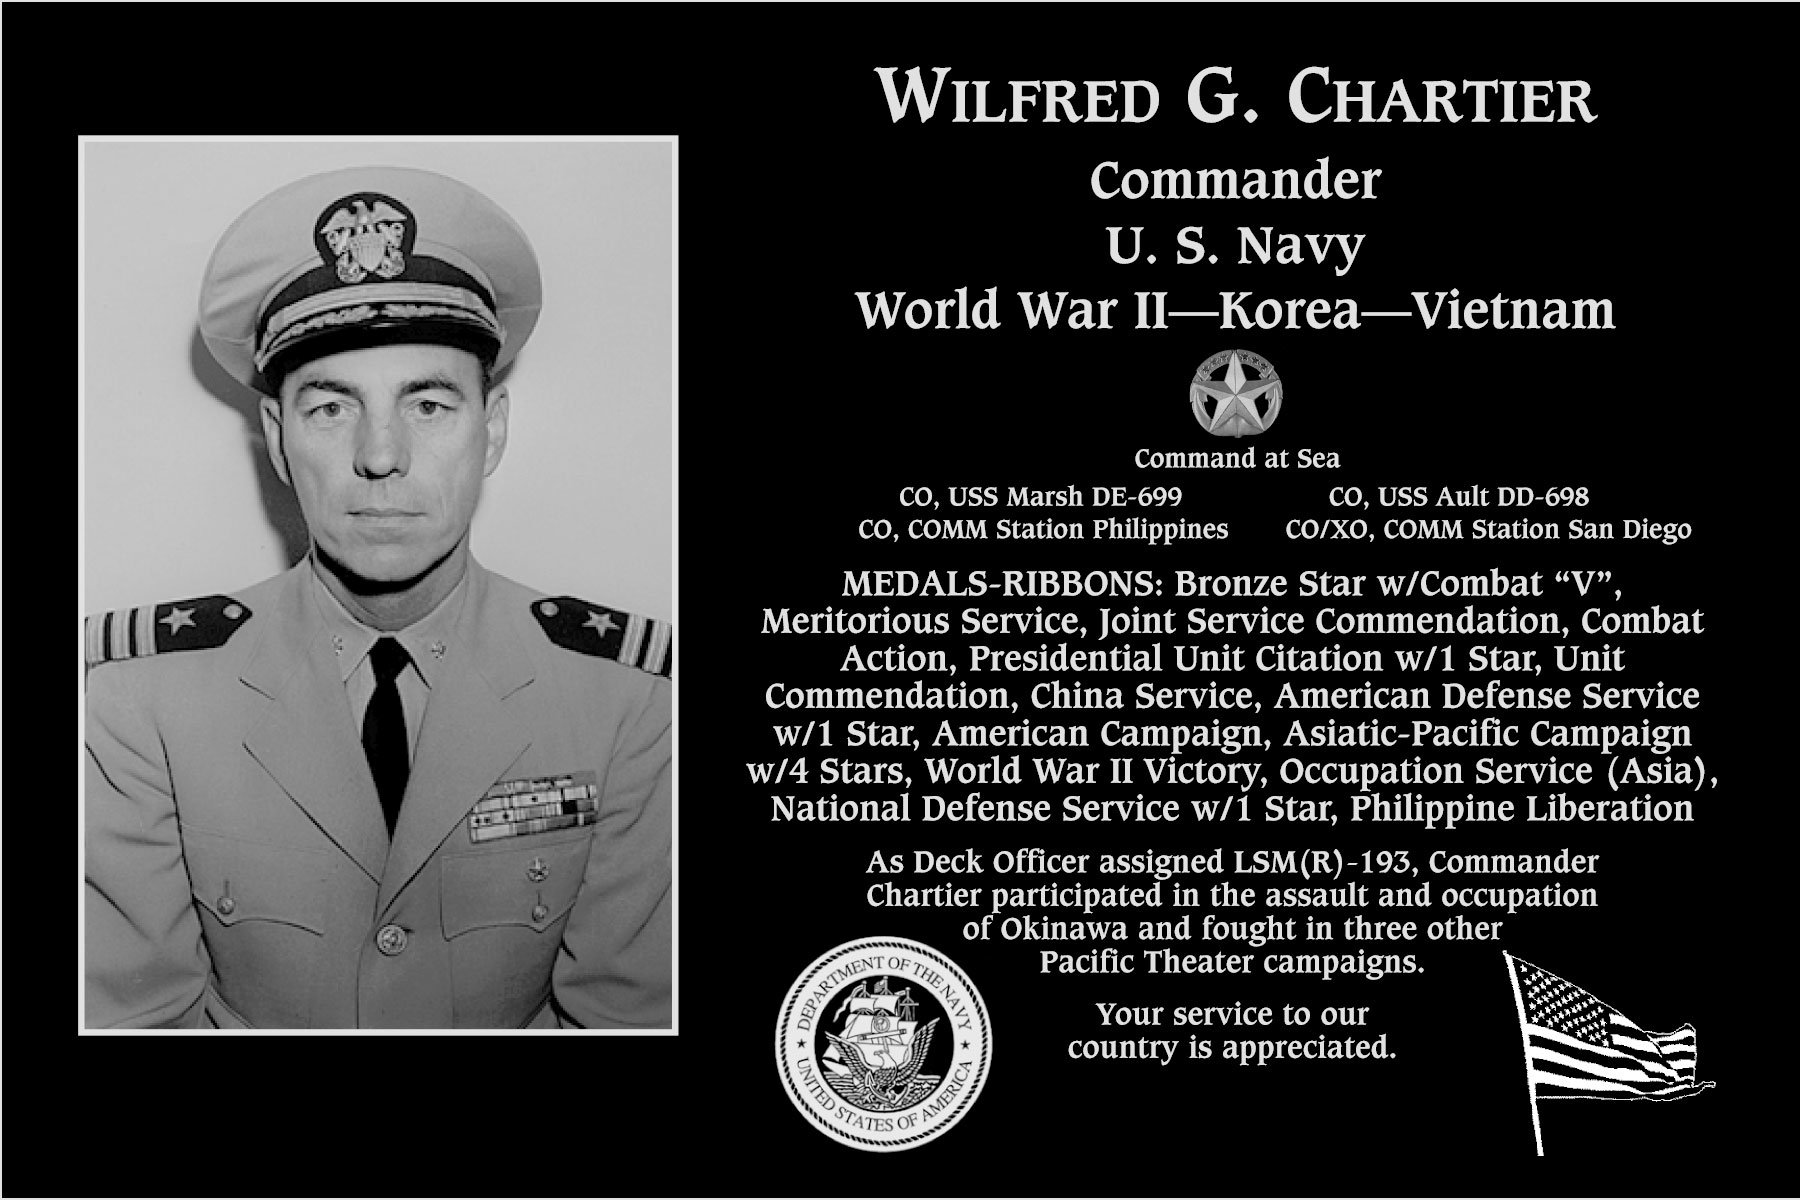 Wilfred G. Chartier